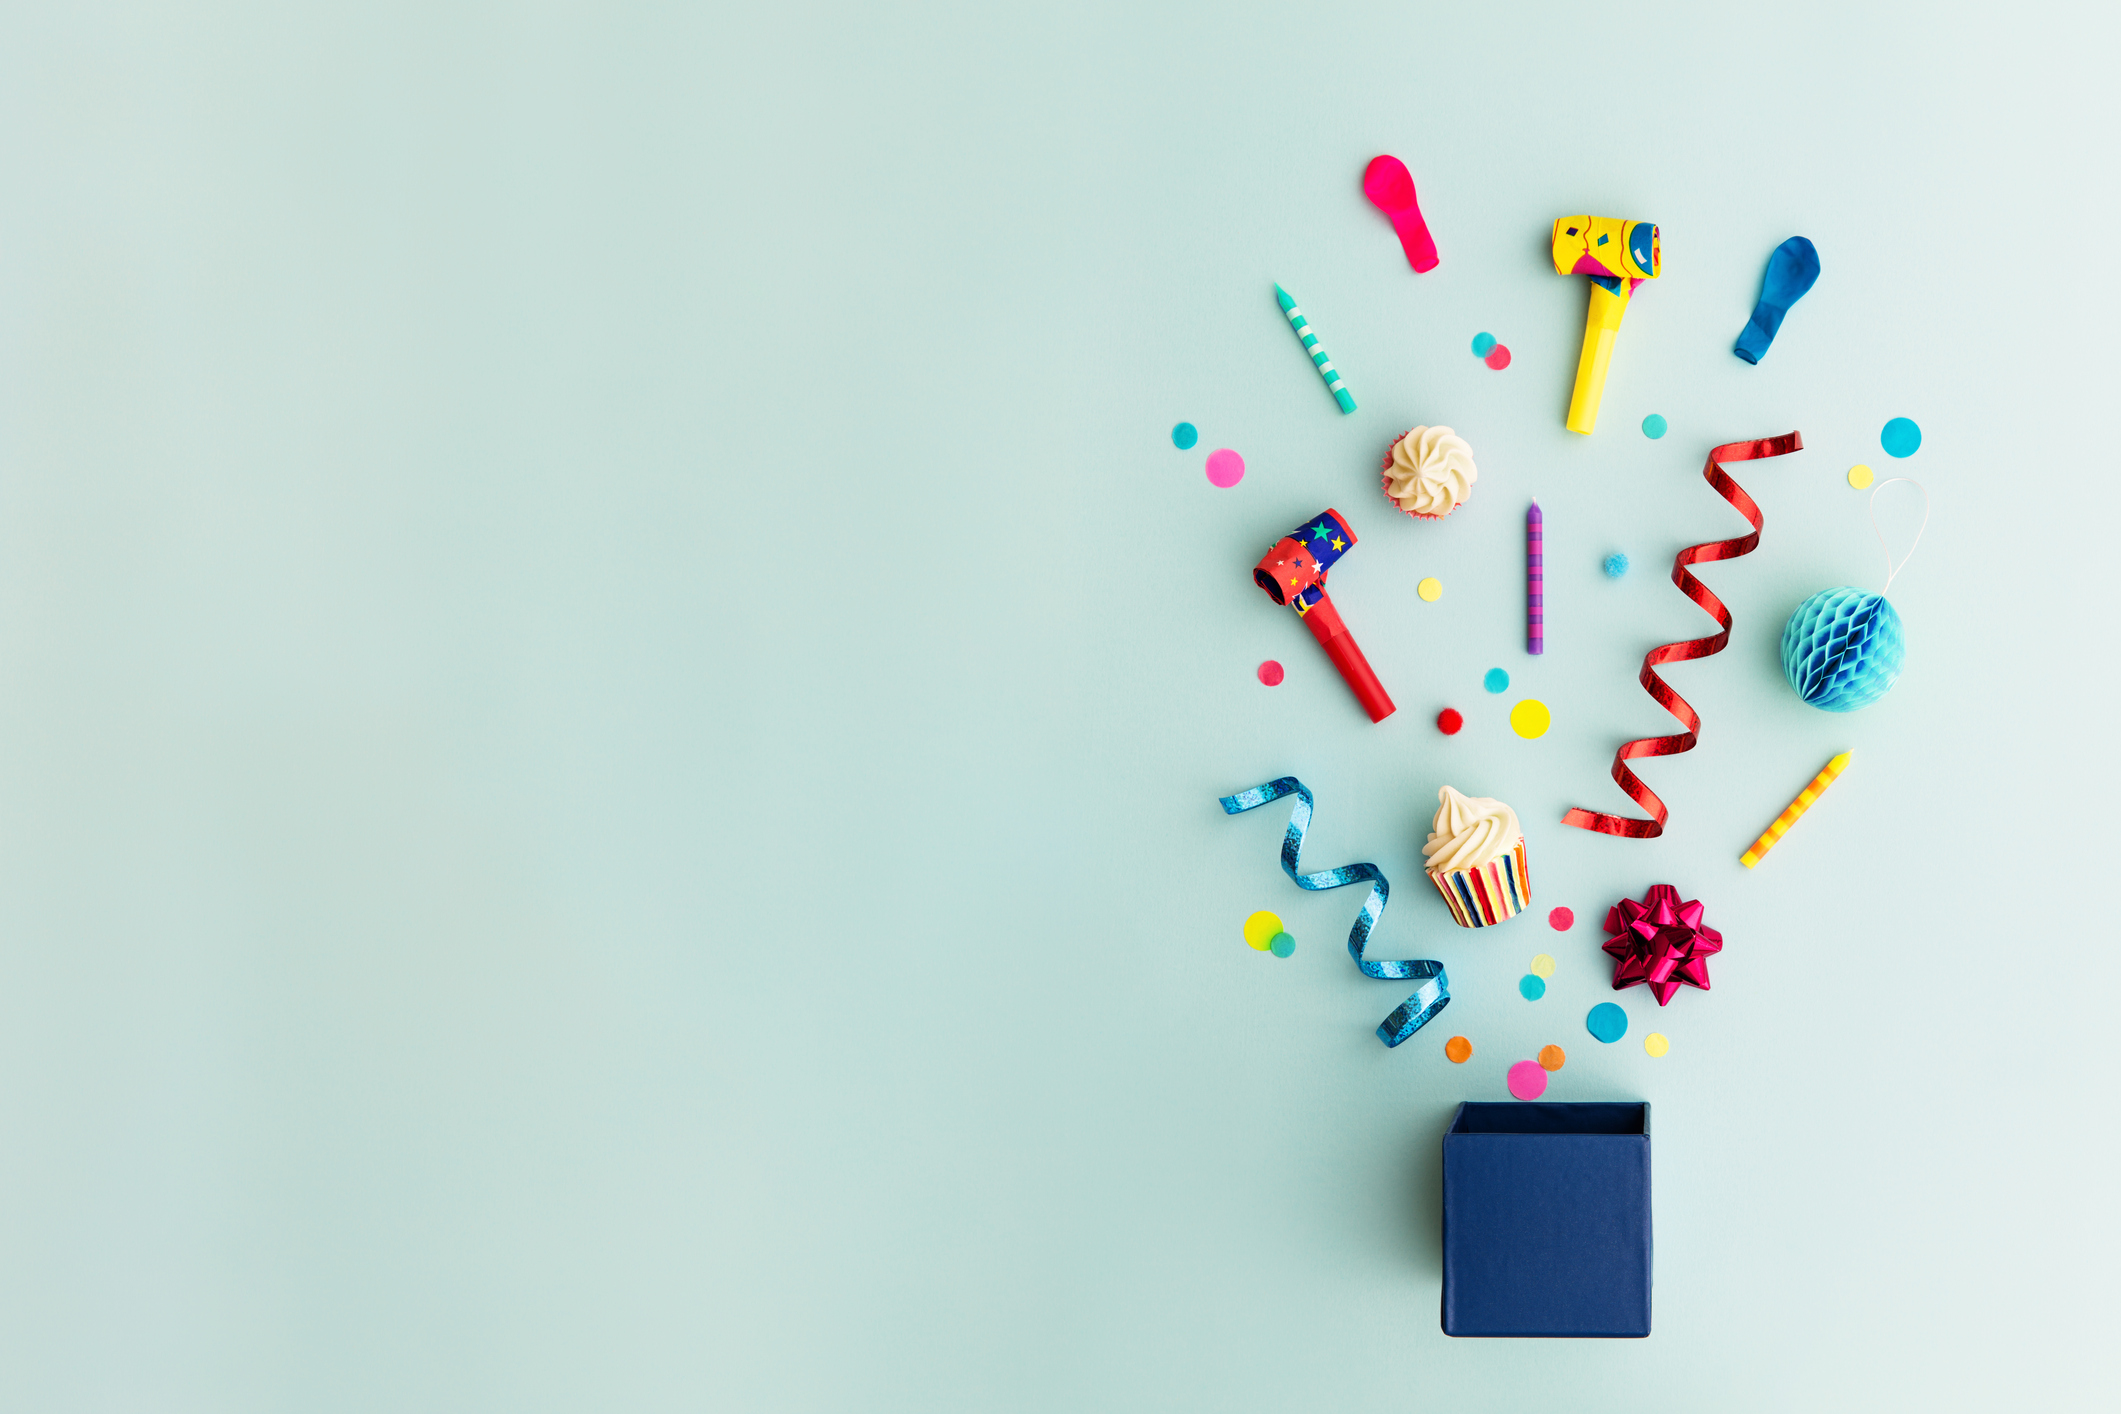 Objects for a birthday party